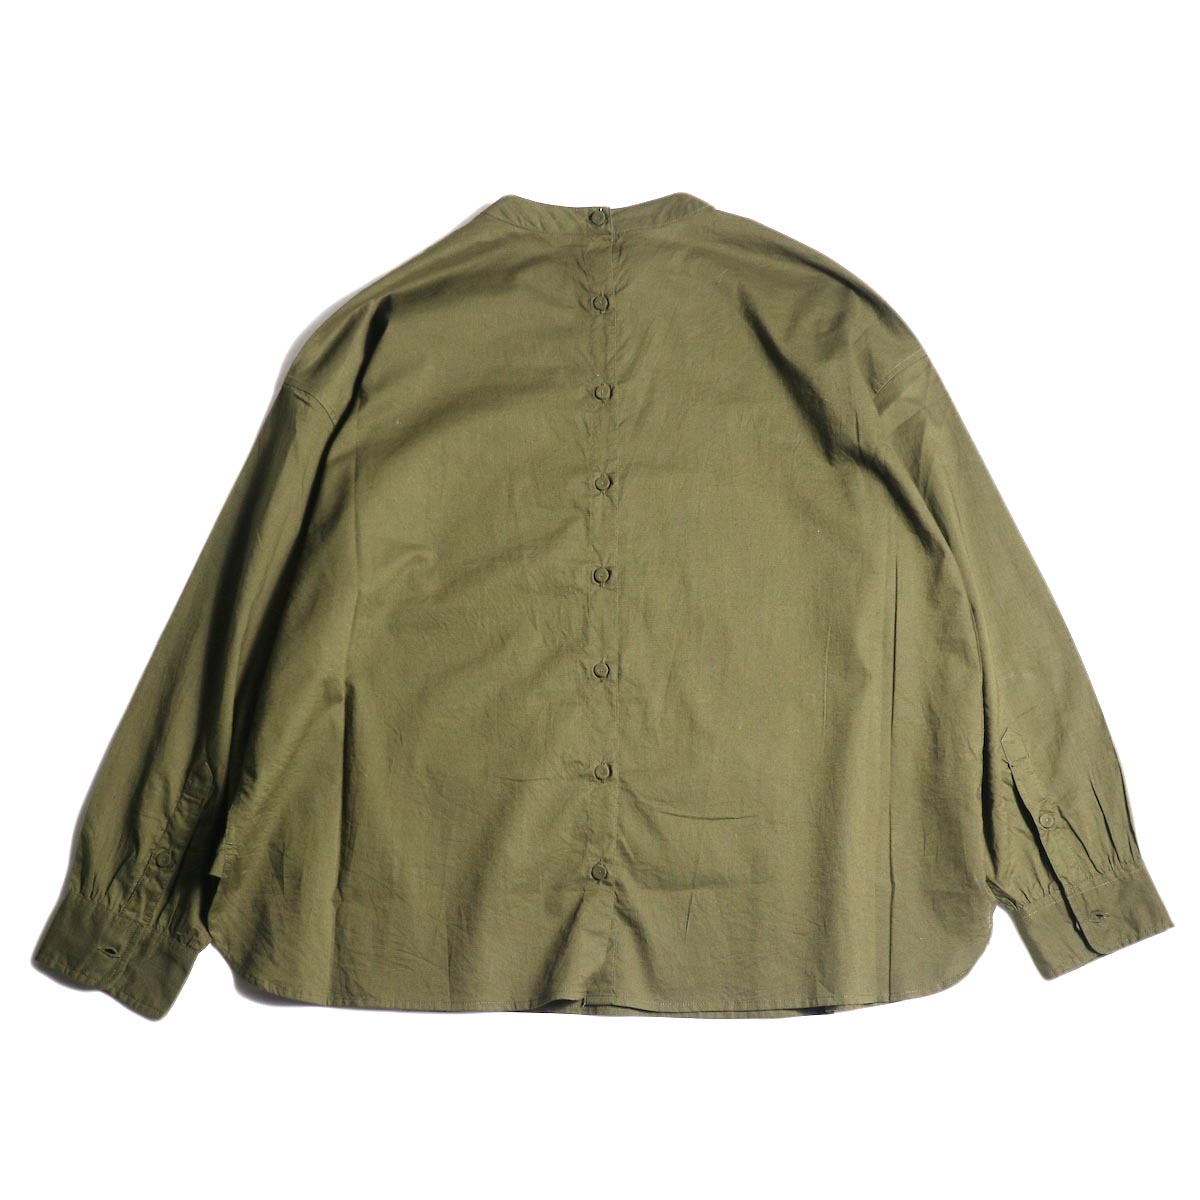 maison de soil / BACK OPENING STAND COLLAR SHIRTS(DK.OLIVE) 背面